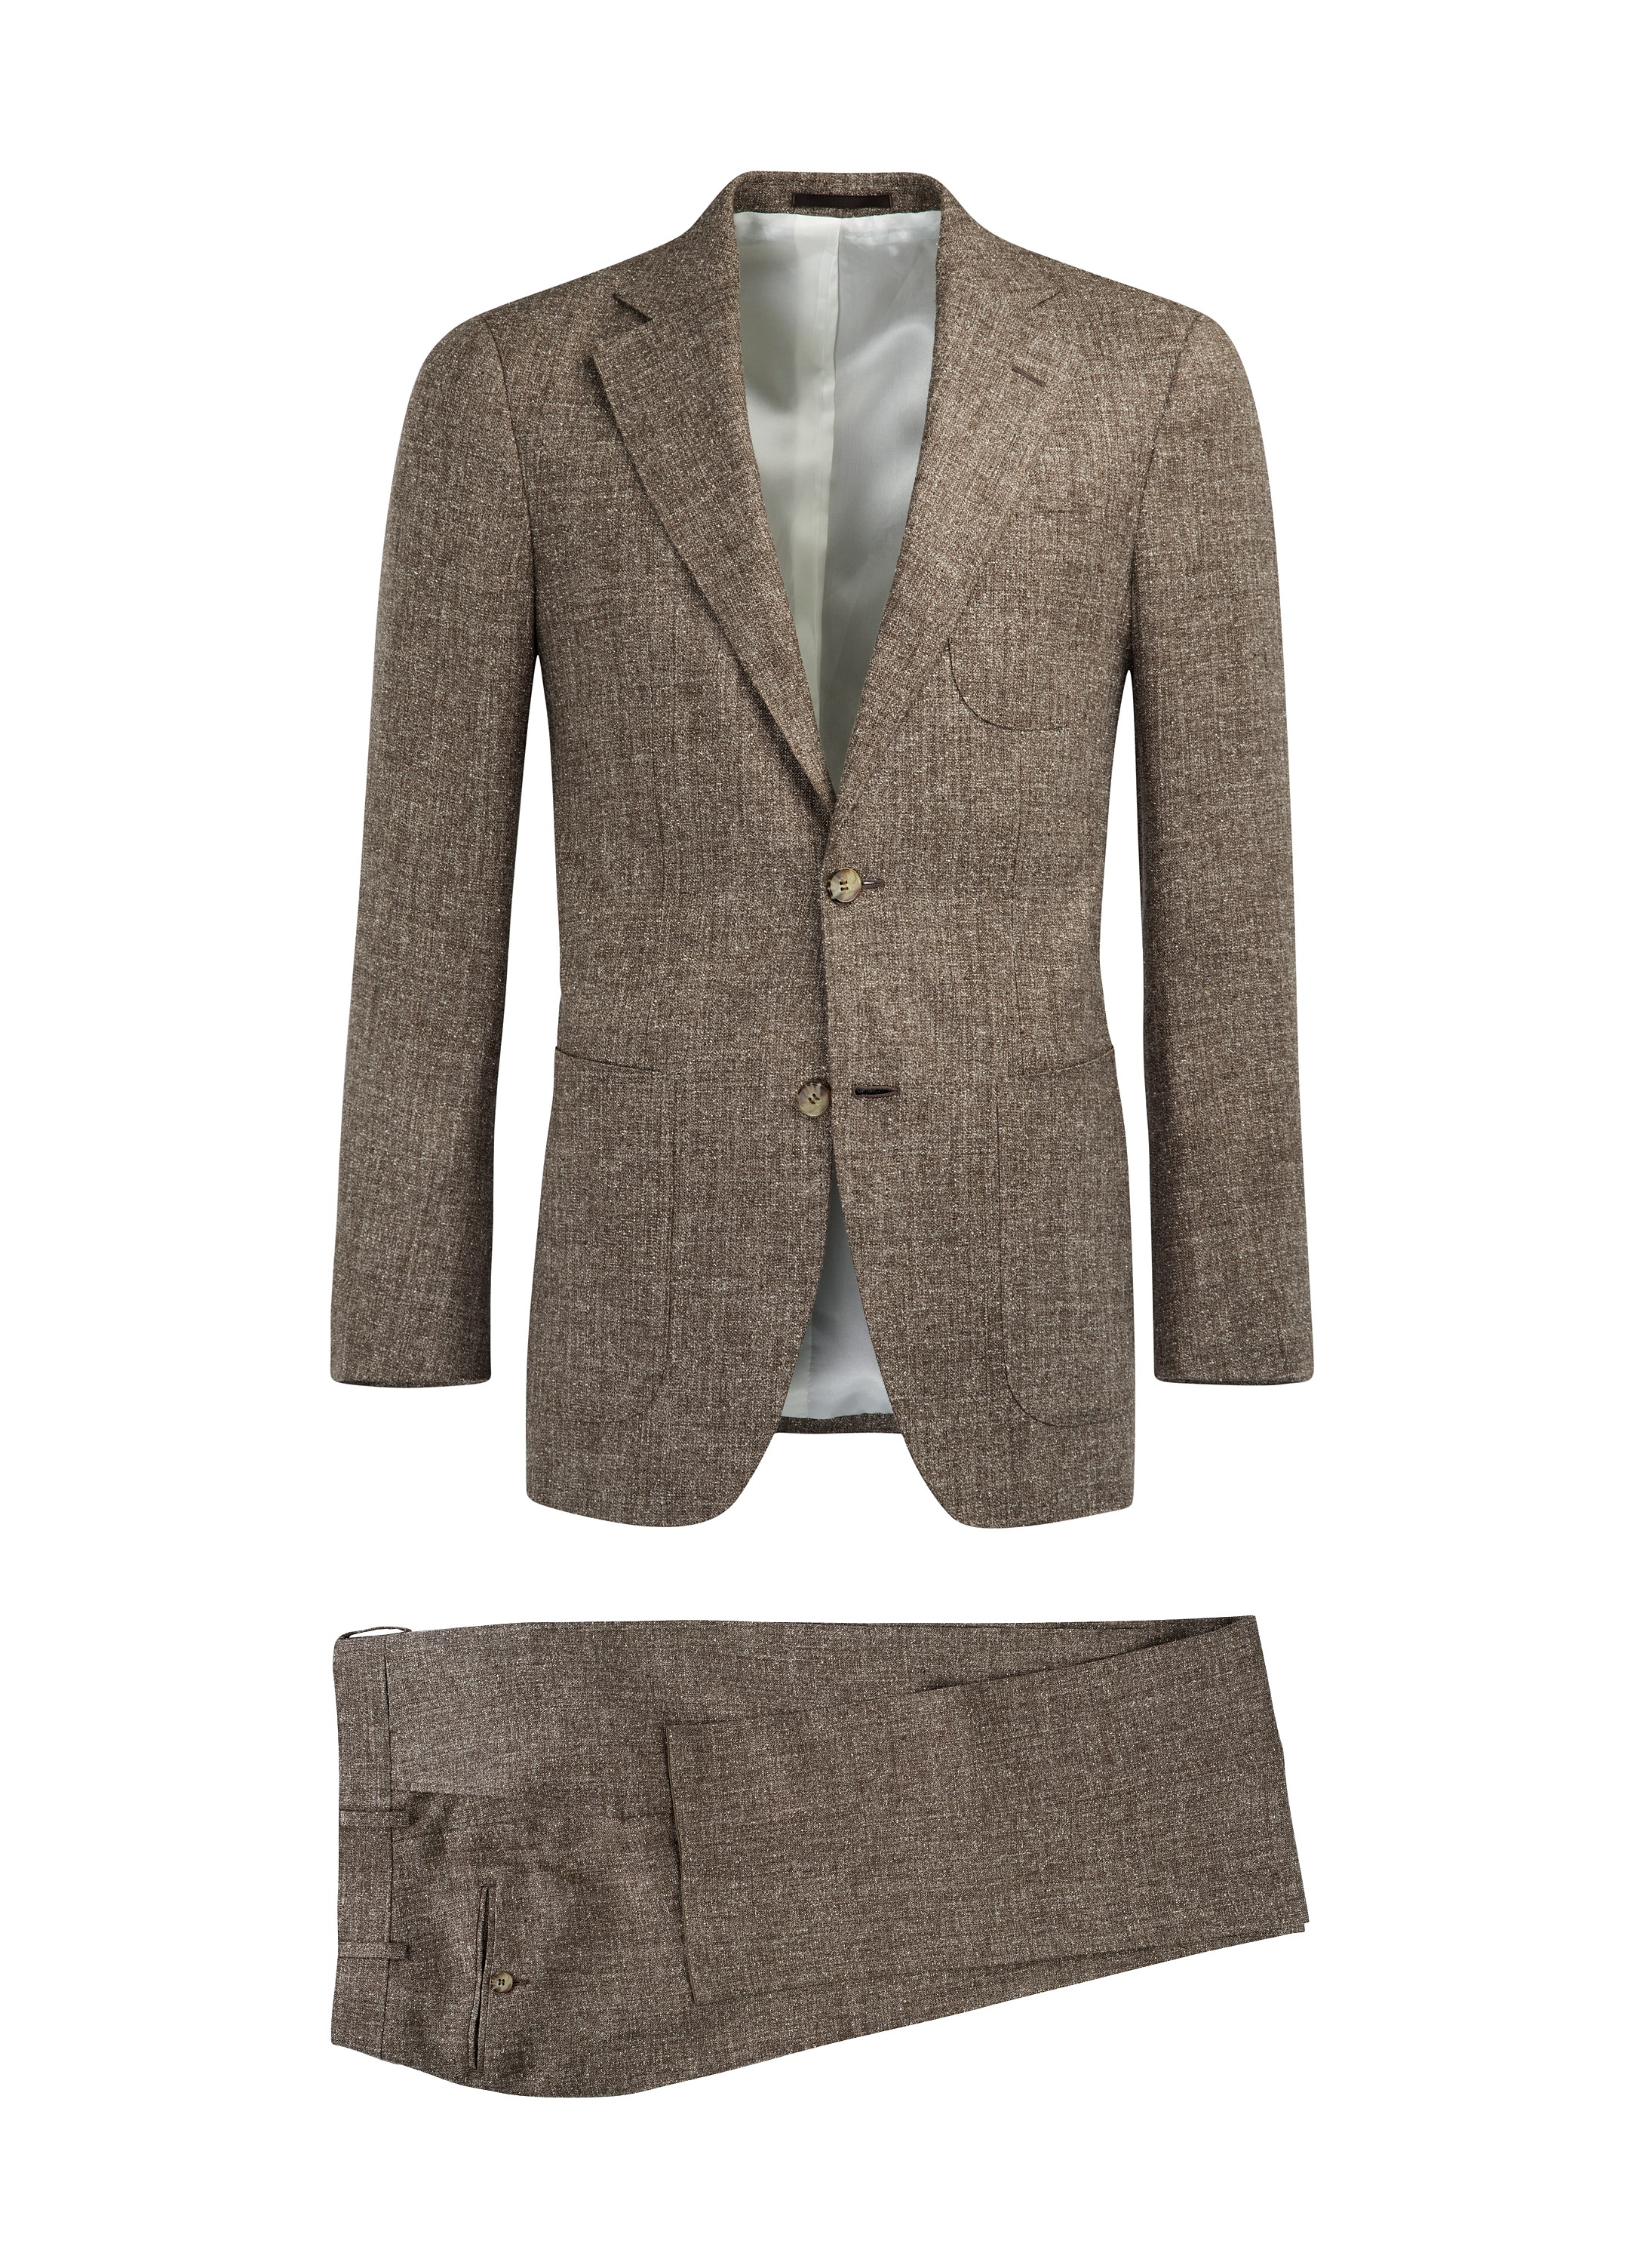 http://statics.suitsupply.com/images/products/Suits/zoom/Suits_Brown_Plain_Hudson_P4220_Suitsupply_Online_Store_5.jpg